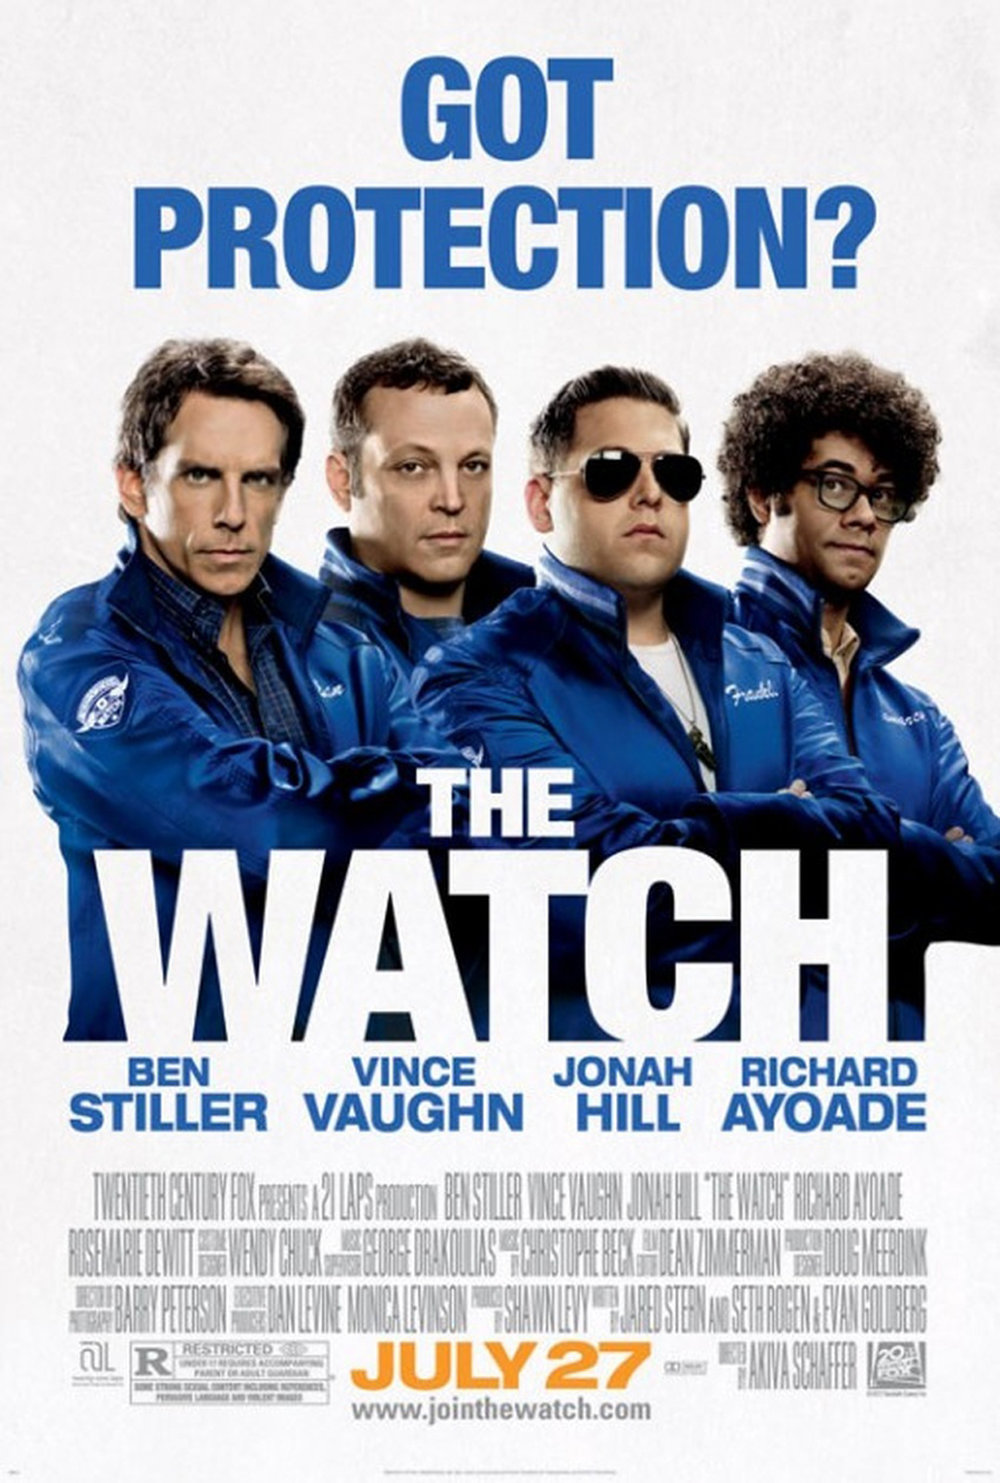 The-Watch-Movie-Poster.jpg